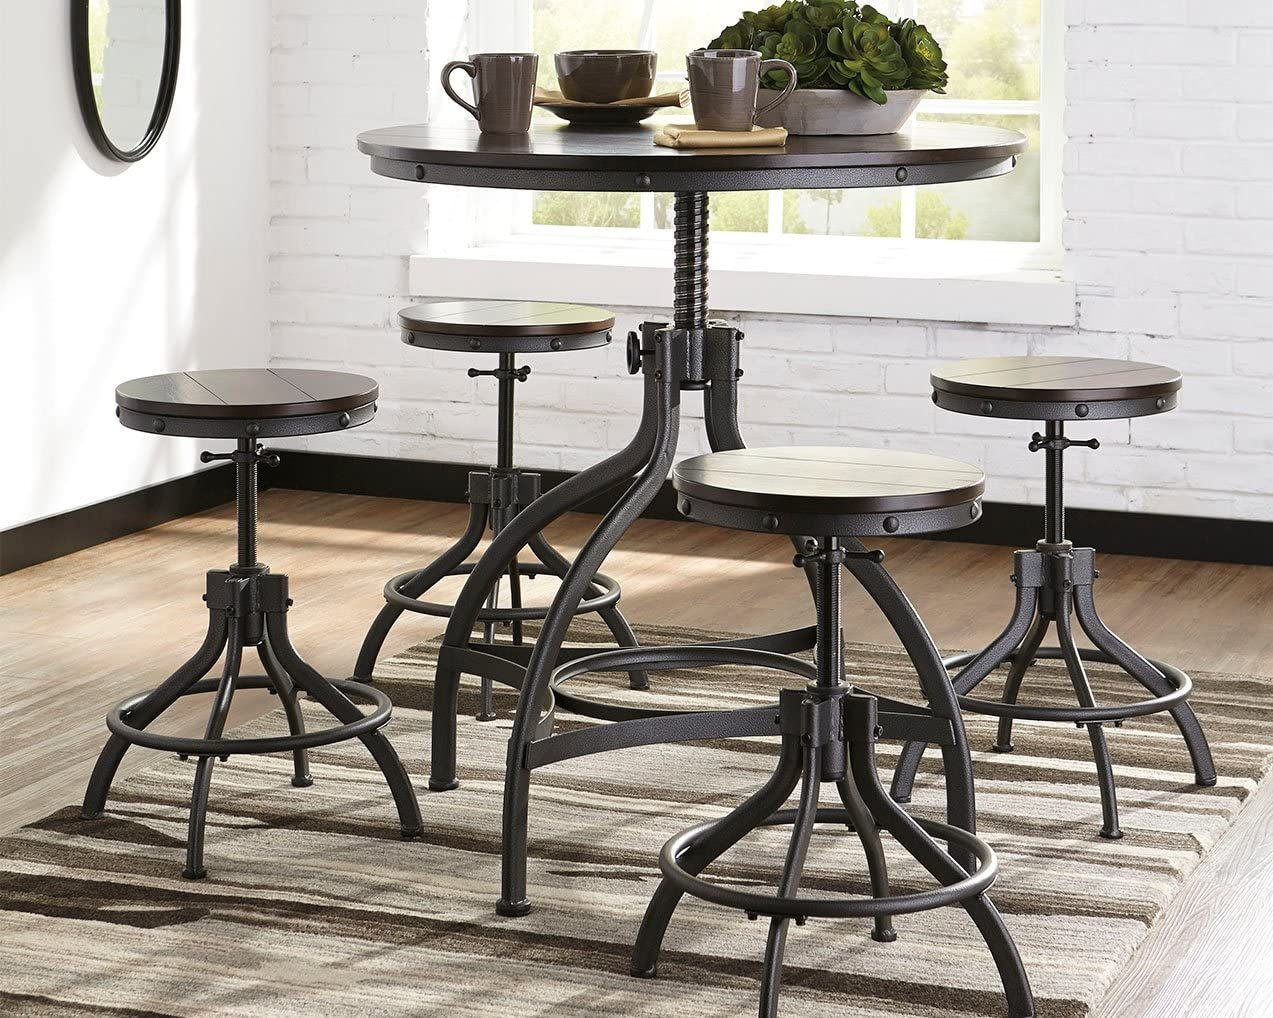 Ashley Furniture Signature Design – Odium Counter Height Dining Room Table and Bar Stools Set of 5 – Brown